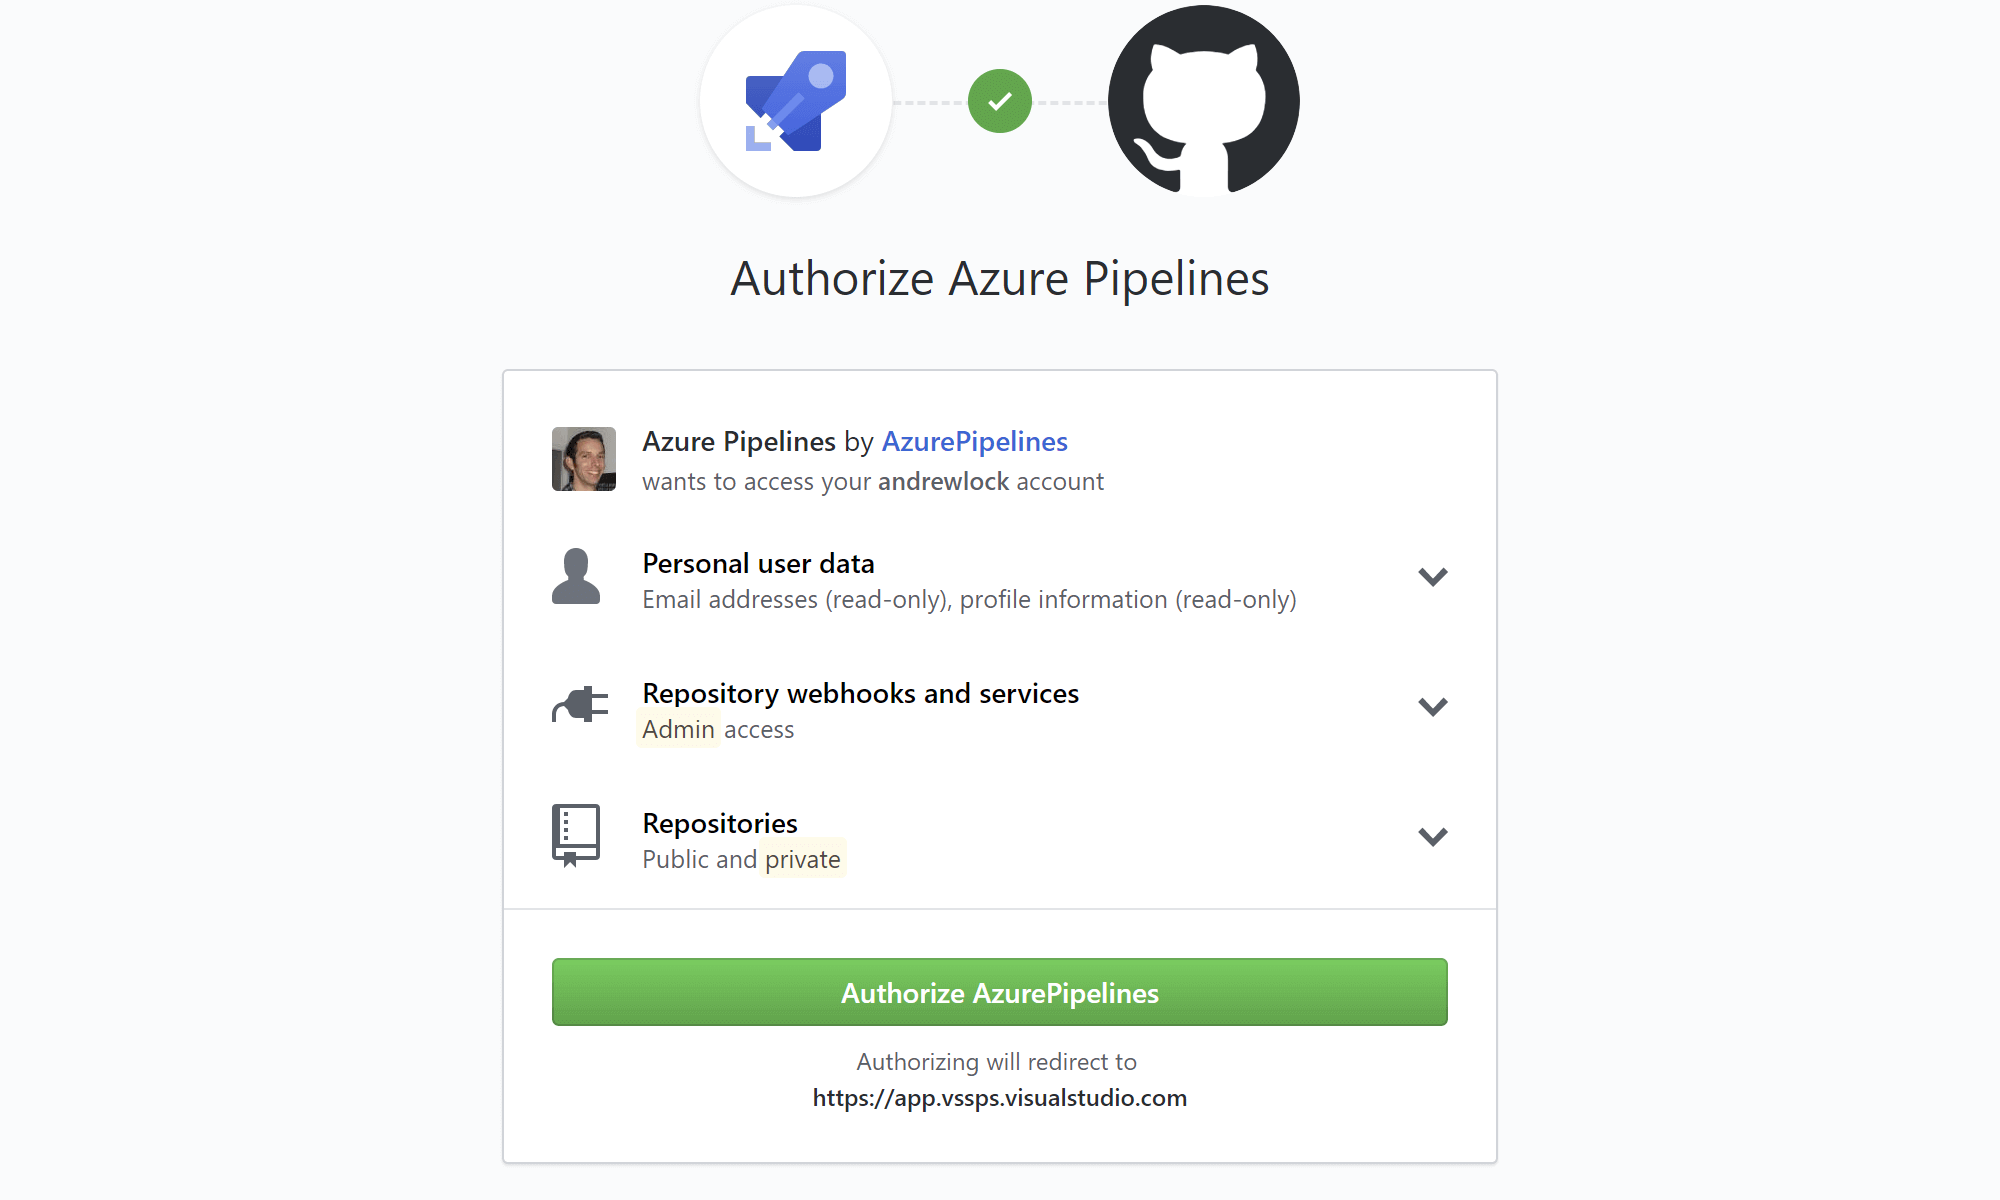 Building an open source GitHub project using Azure DevOps